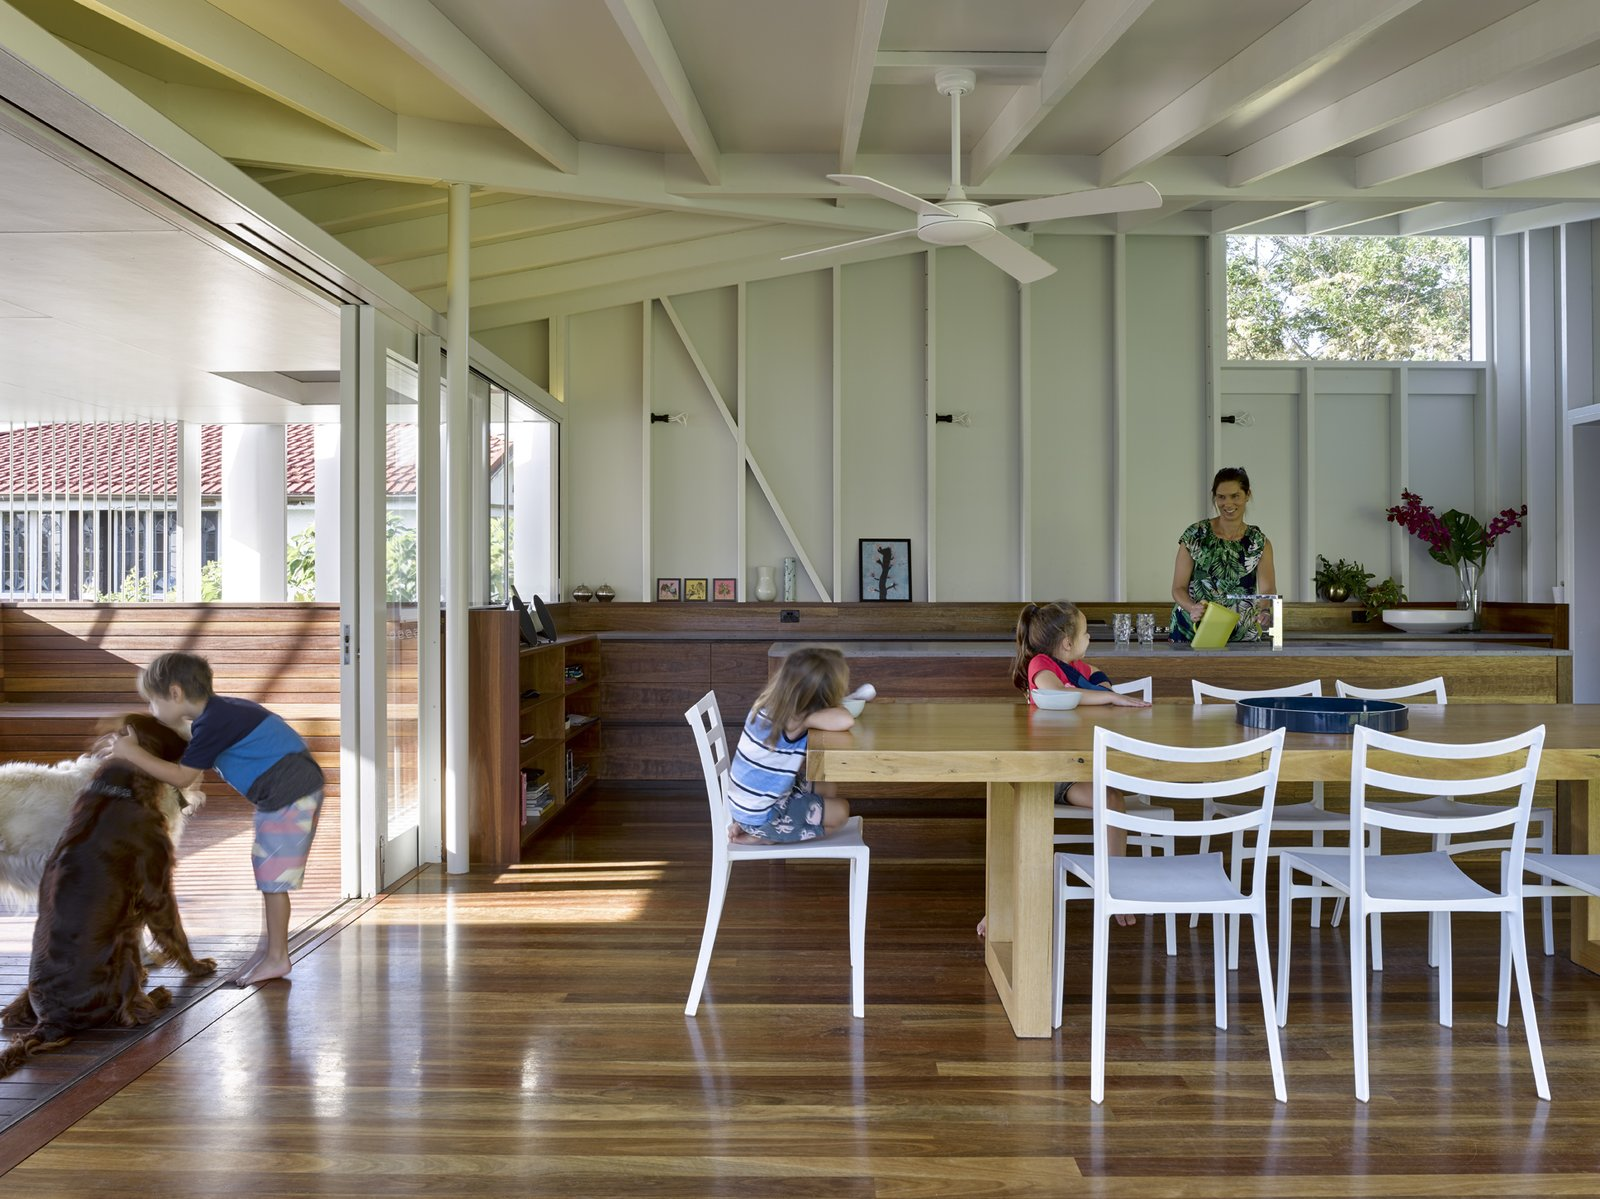 Dining Room, Table, Chair, Shelves, Medium Hardwood Floor, and Wall Lighting The pavilion relates to the original house in the exterior framework, as both use white-painted timber. Glass doors retract for full outdoor access.    Photo 5 of 8 in An Extended Garden Pavilion Enhances a 1920s Cottage